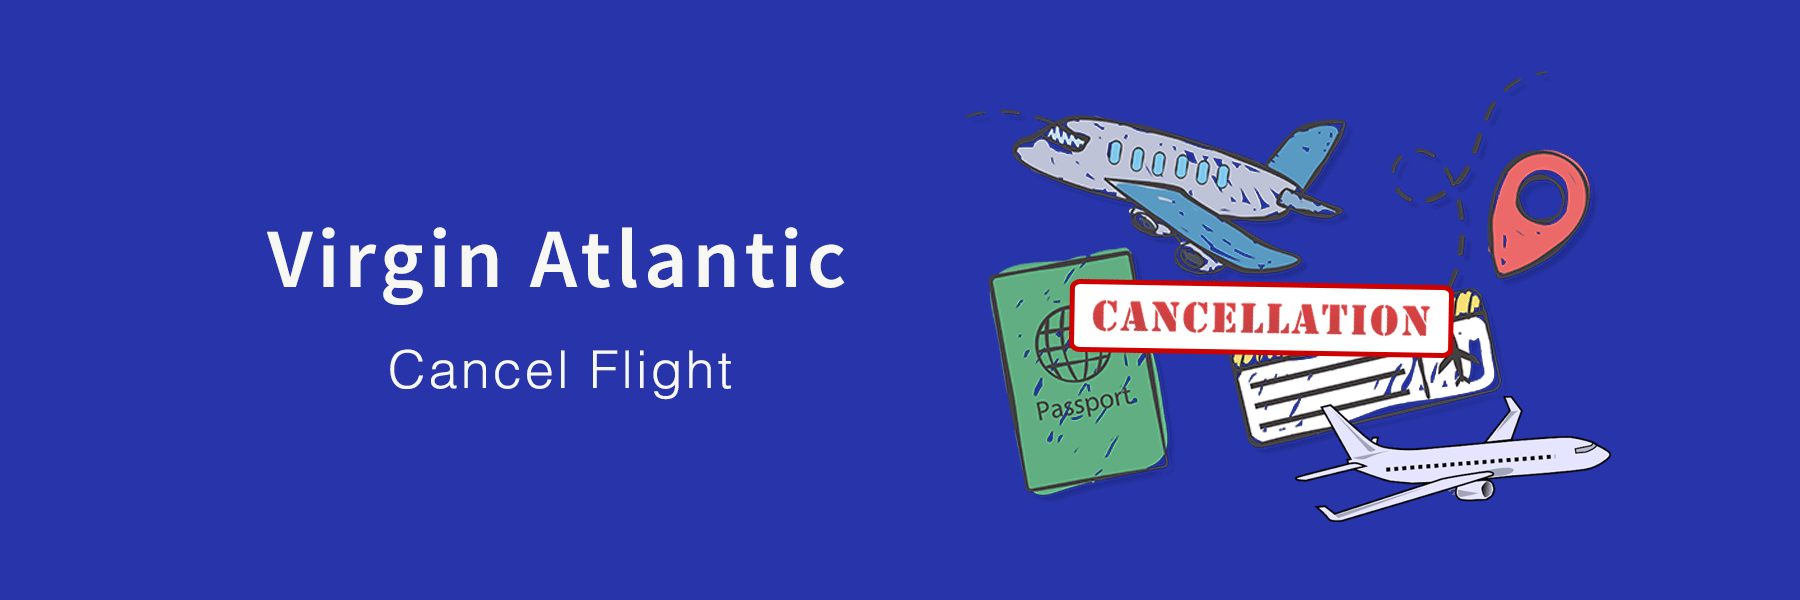 Virgin Atlantic Cancel Flight: